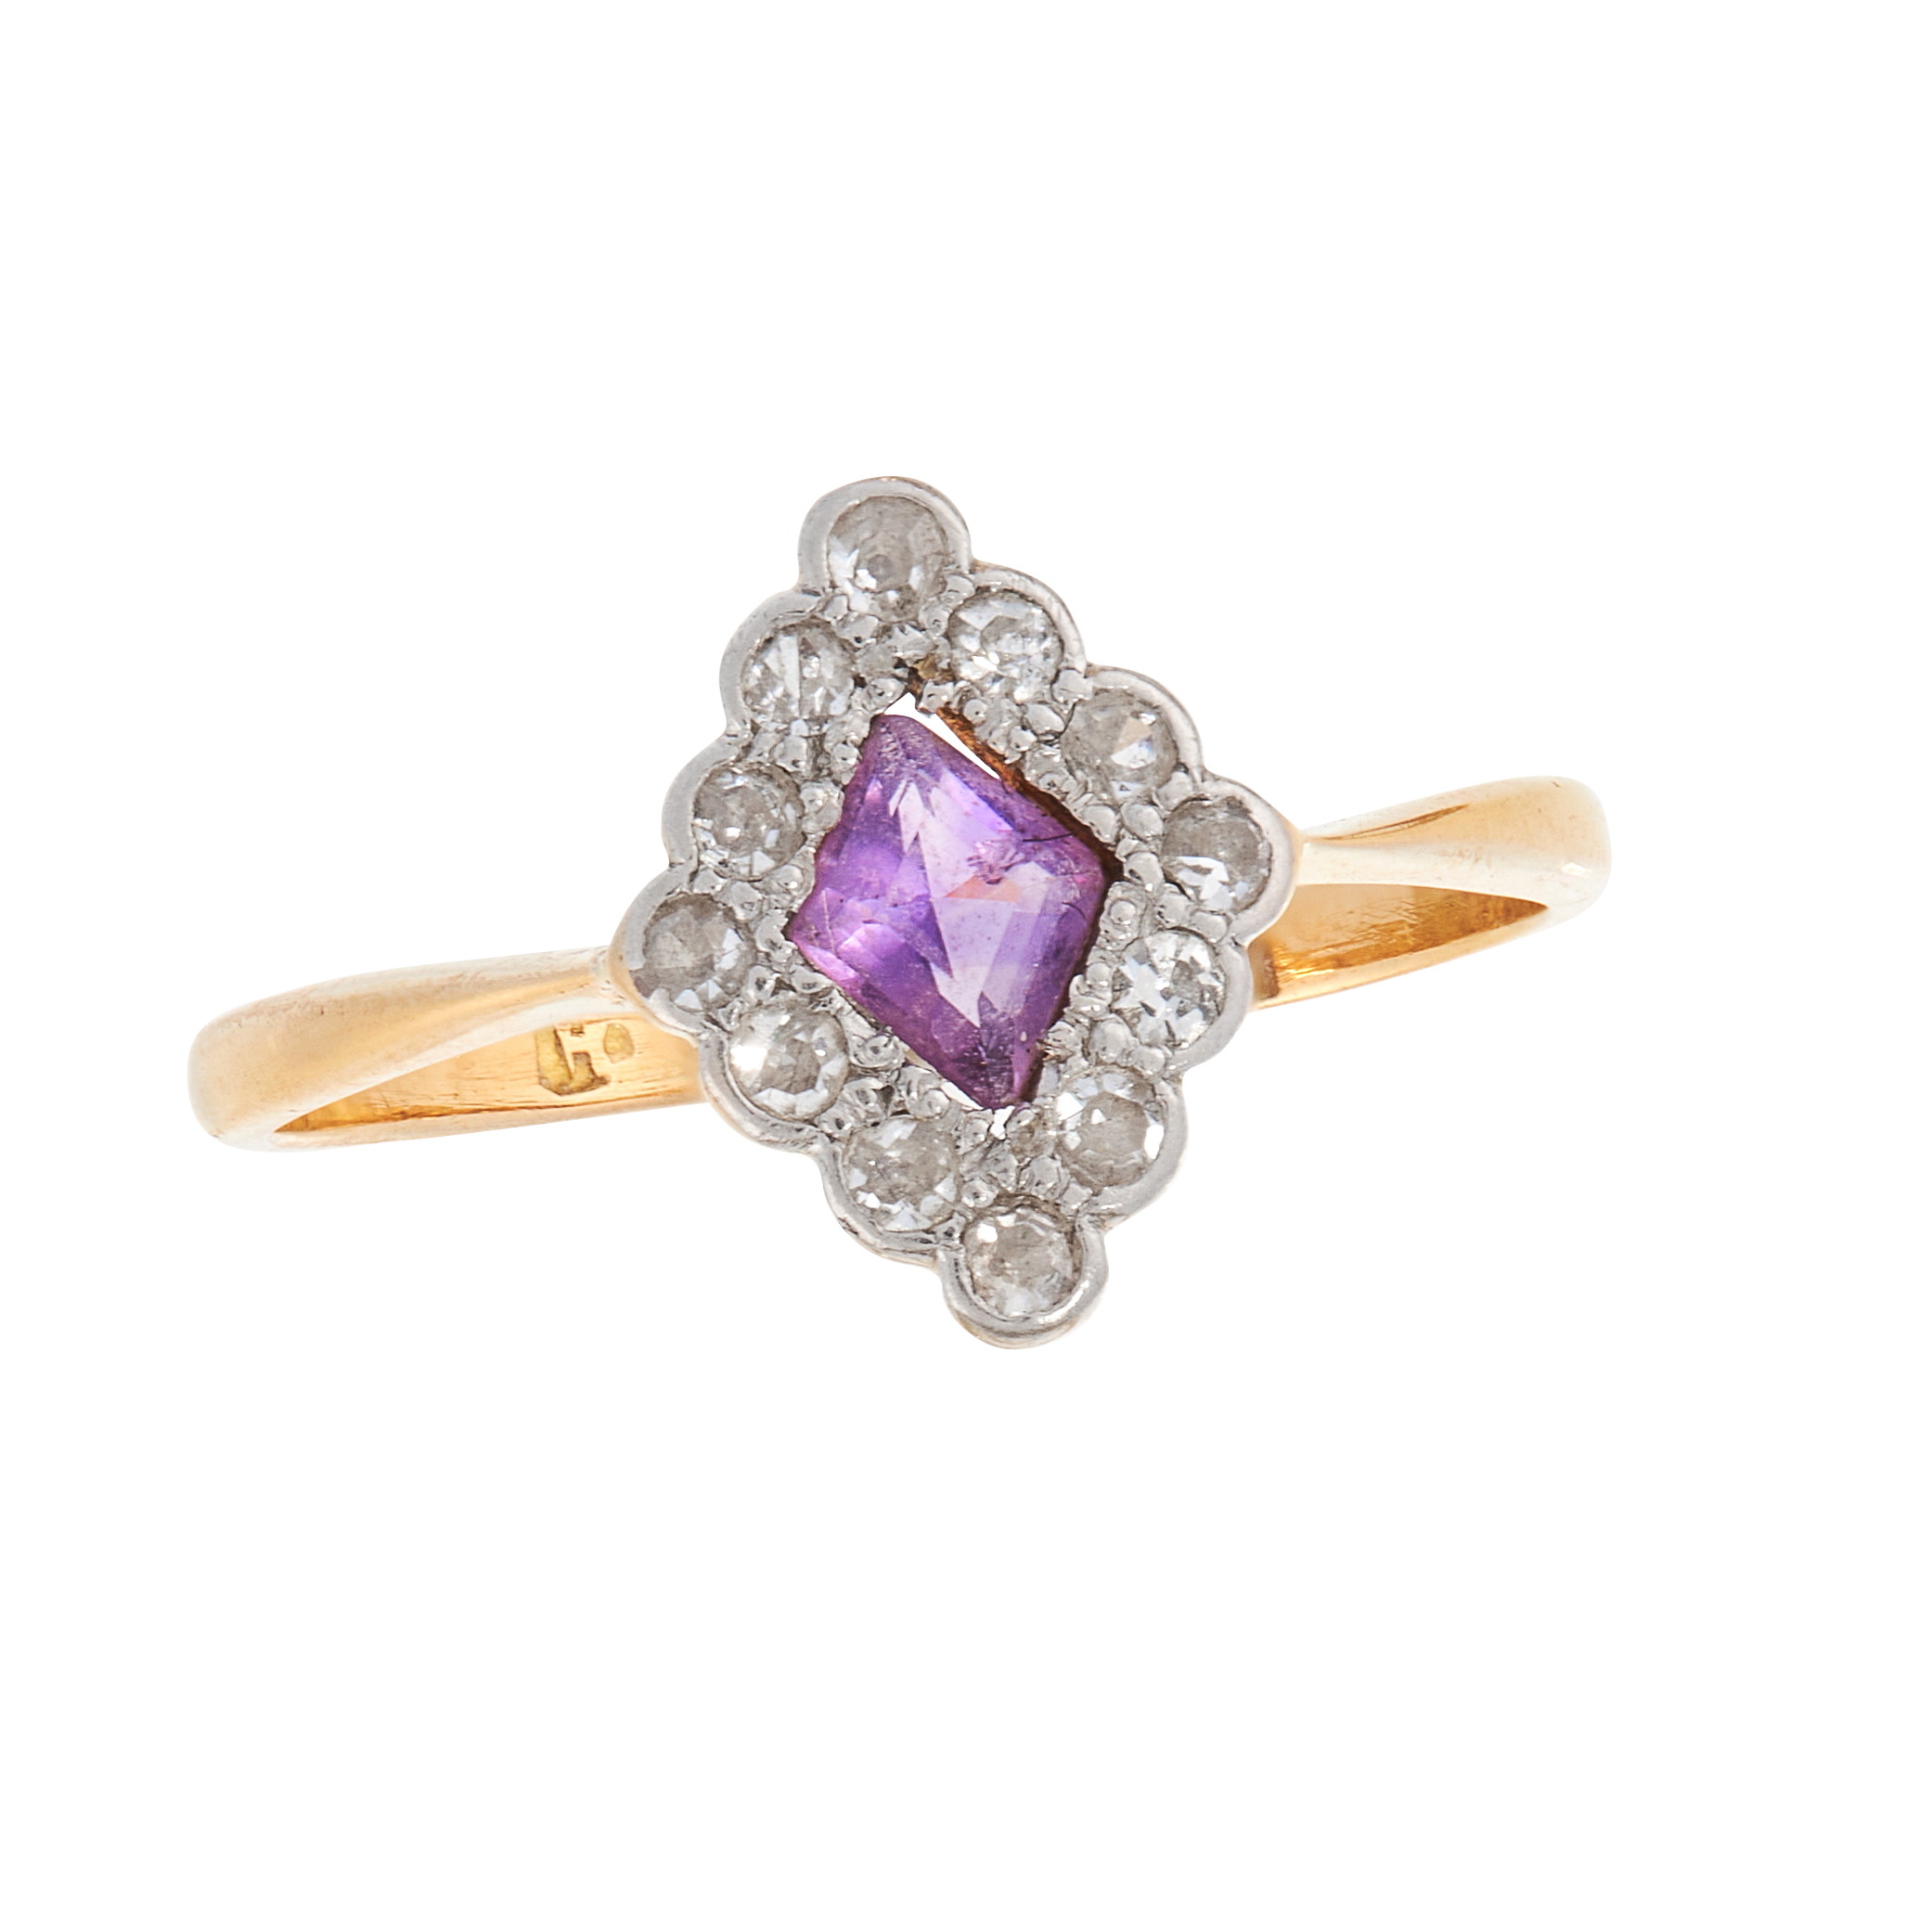 AN ART DECO AMETHYST AND DIAMOND DRESS RING, EARLY 20TH CENTURY in 18ct yellow gold and platinum,